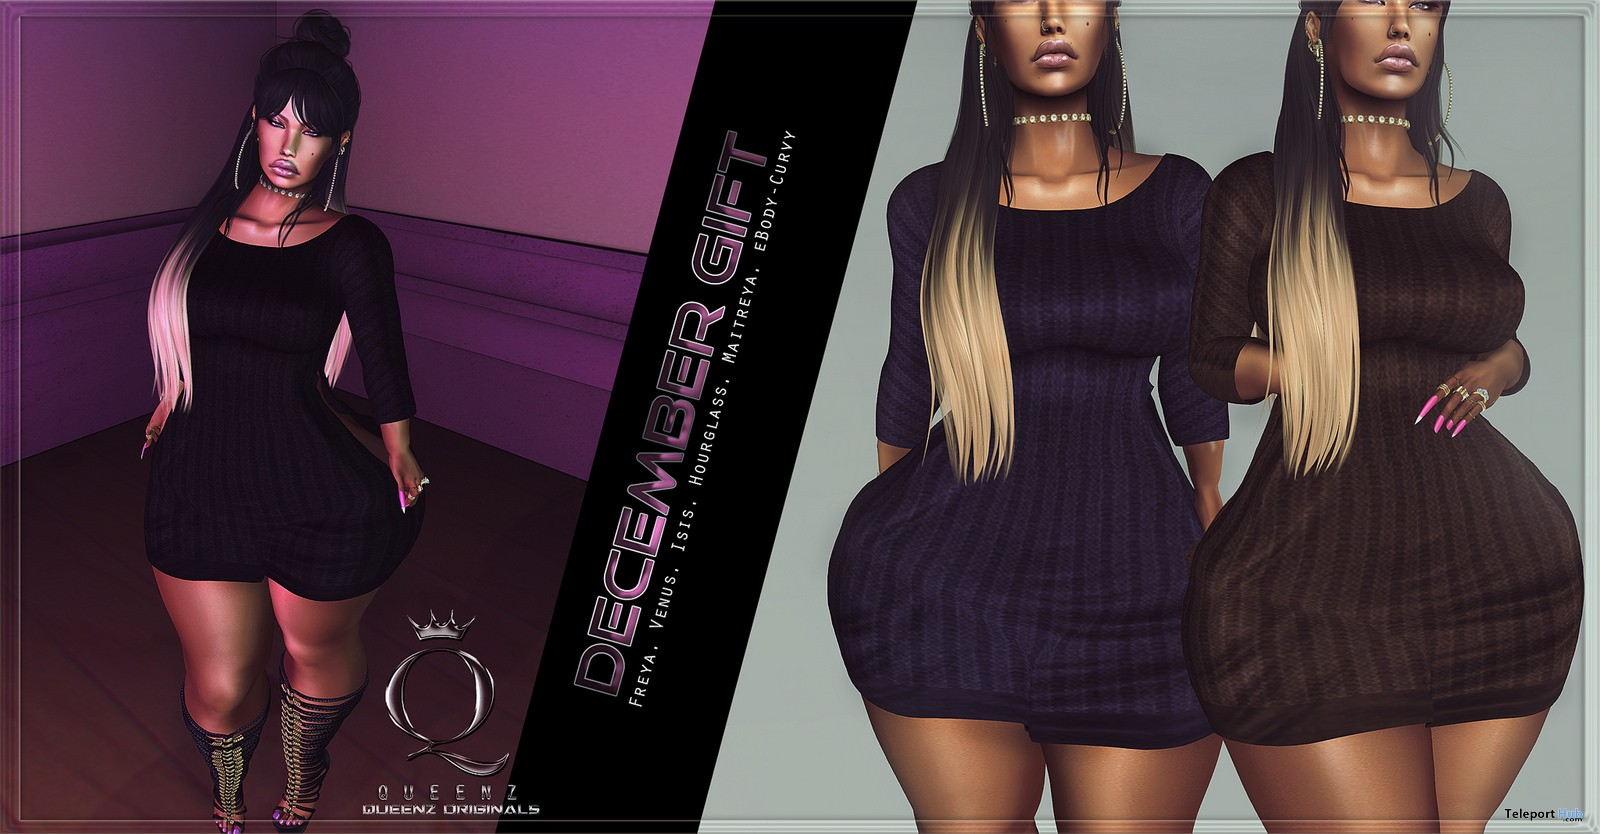 Sweater Dress December 2017 Group Gift by QUEENZ - Teleport Hub - teleporthub.com